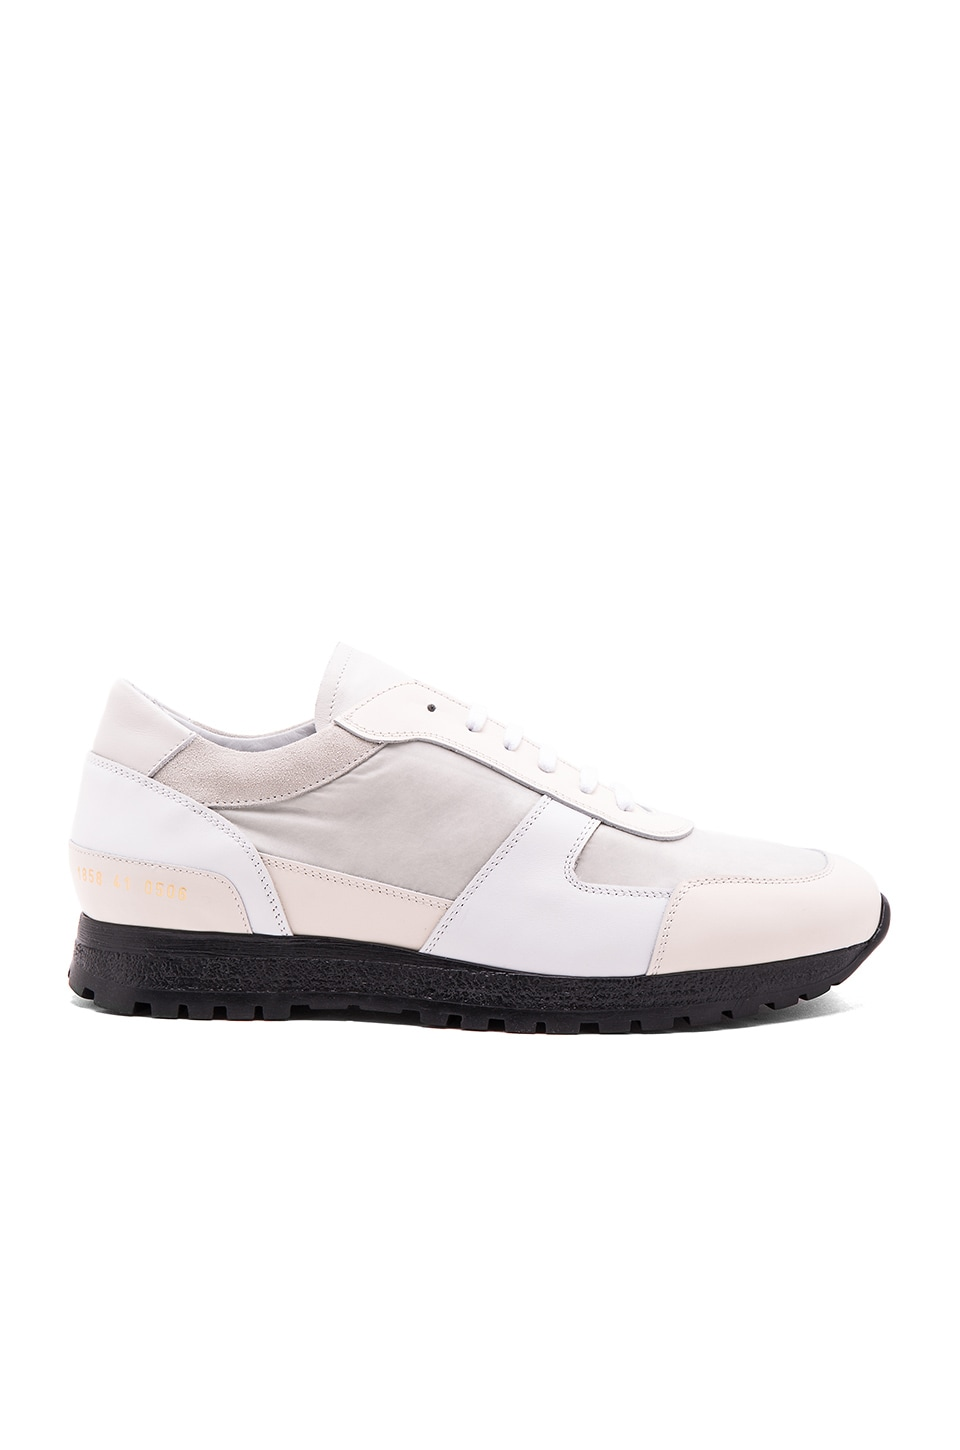 Common Projects Track Shoe in White